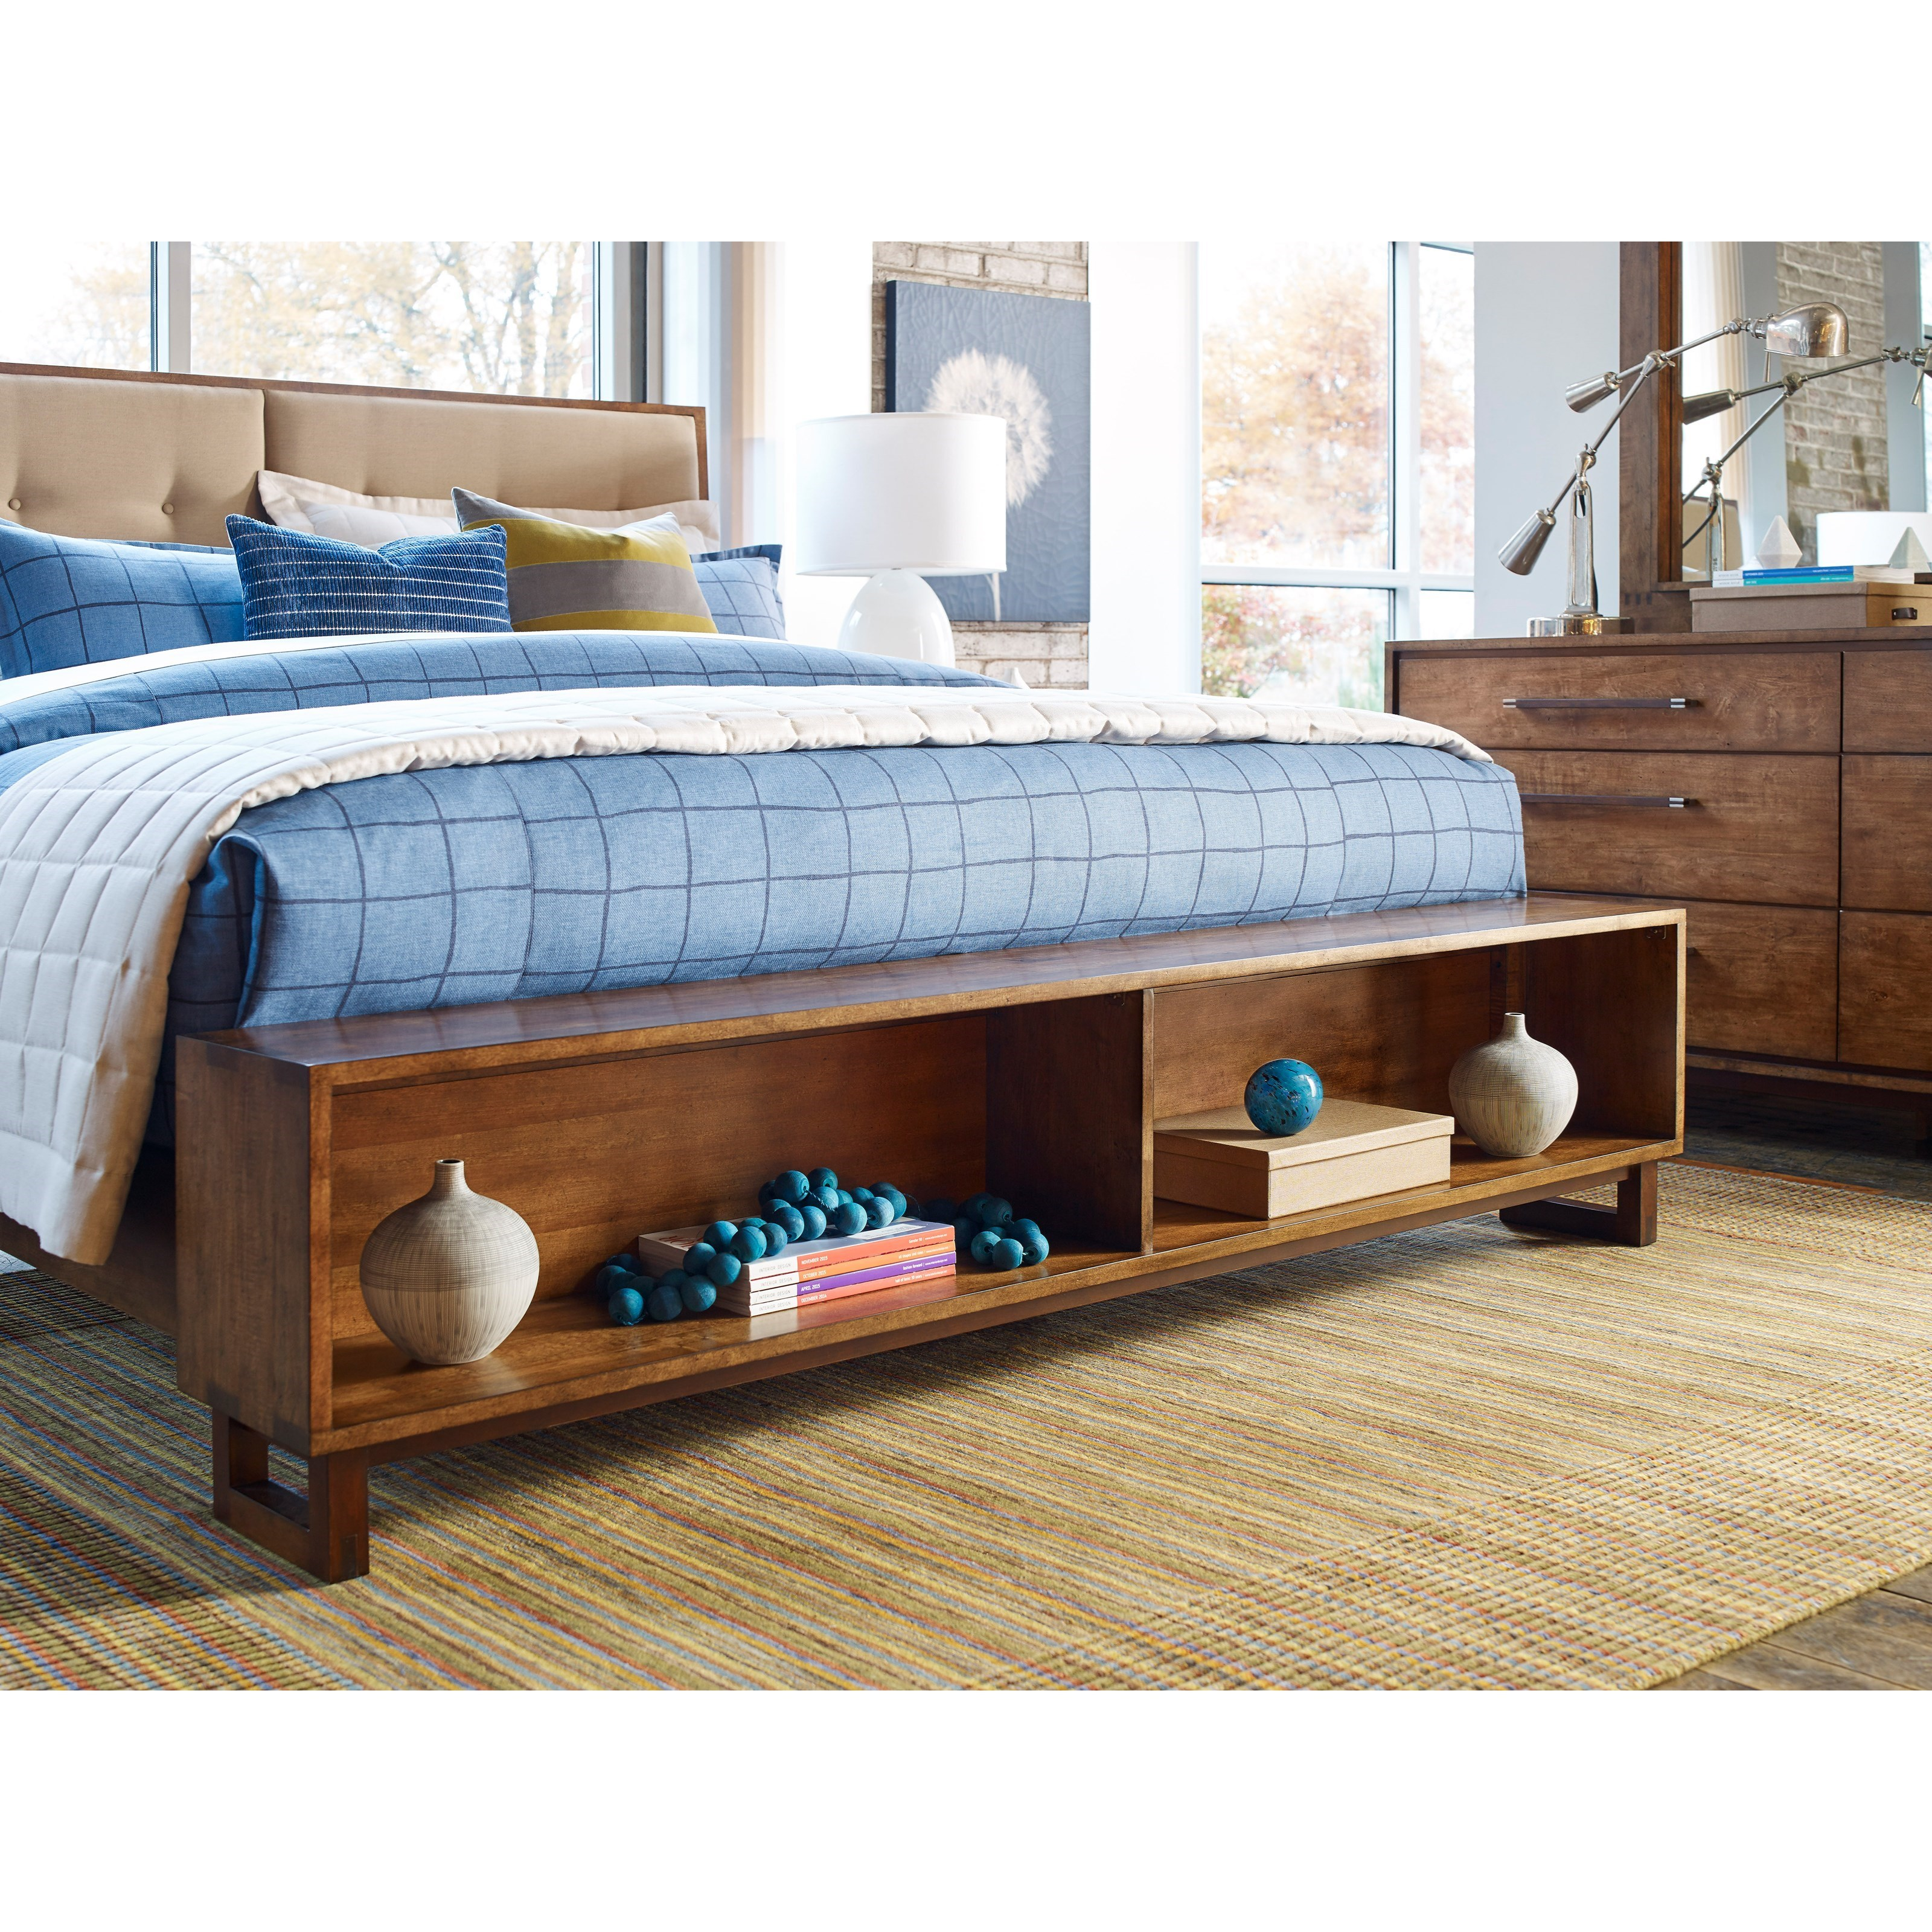 100 bed with headboard and drawers rosewood queen size long